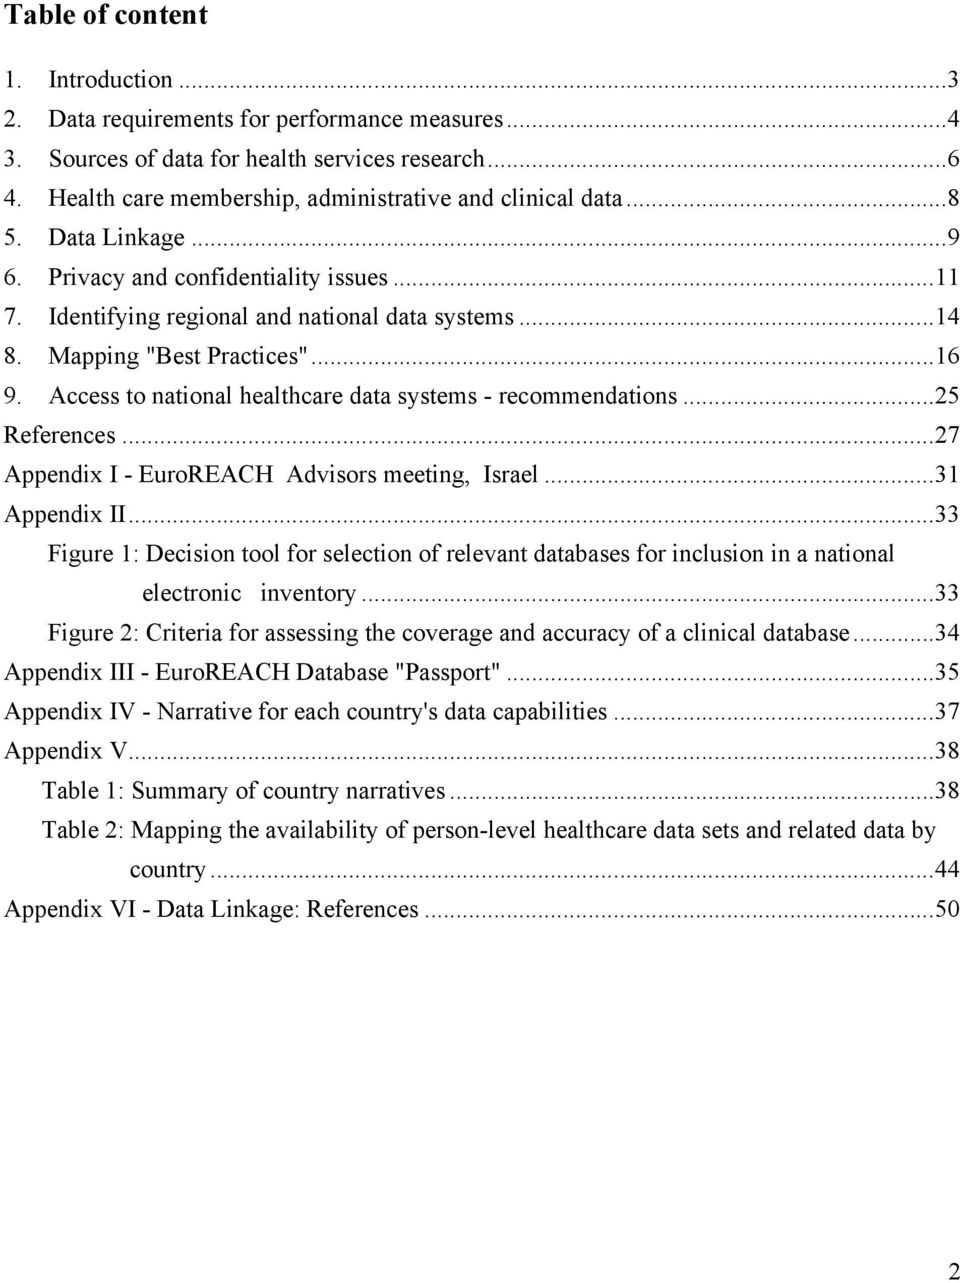 Access to national healthcare data systems - recommendations...25 References...27 Appendix I - EuroREACH Advisors meeting, Israel...31 Appendix II.